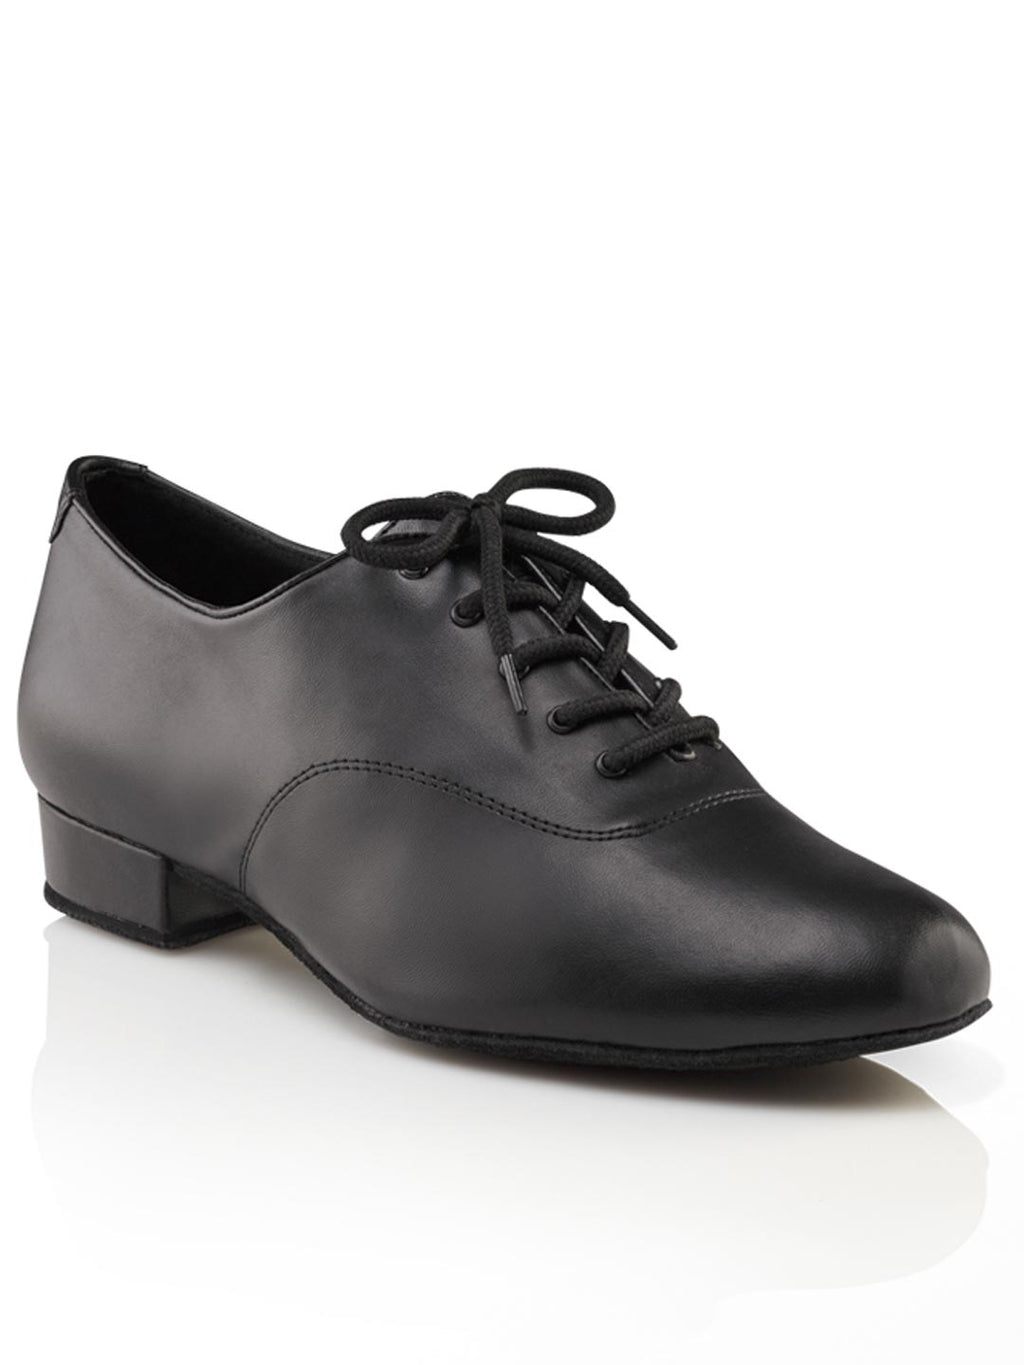 Capezio Men's Ballroom Shoes